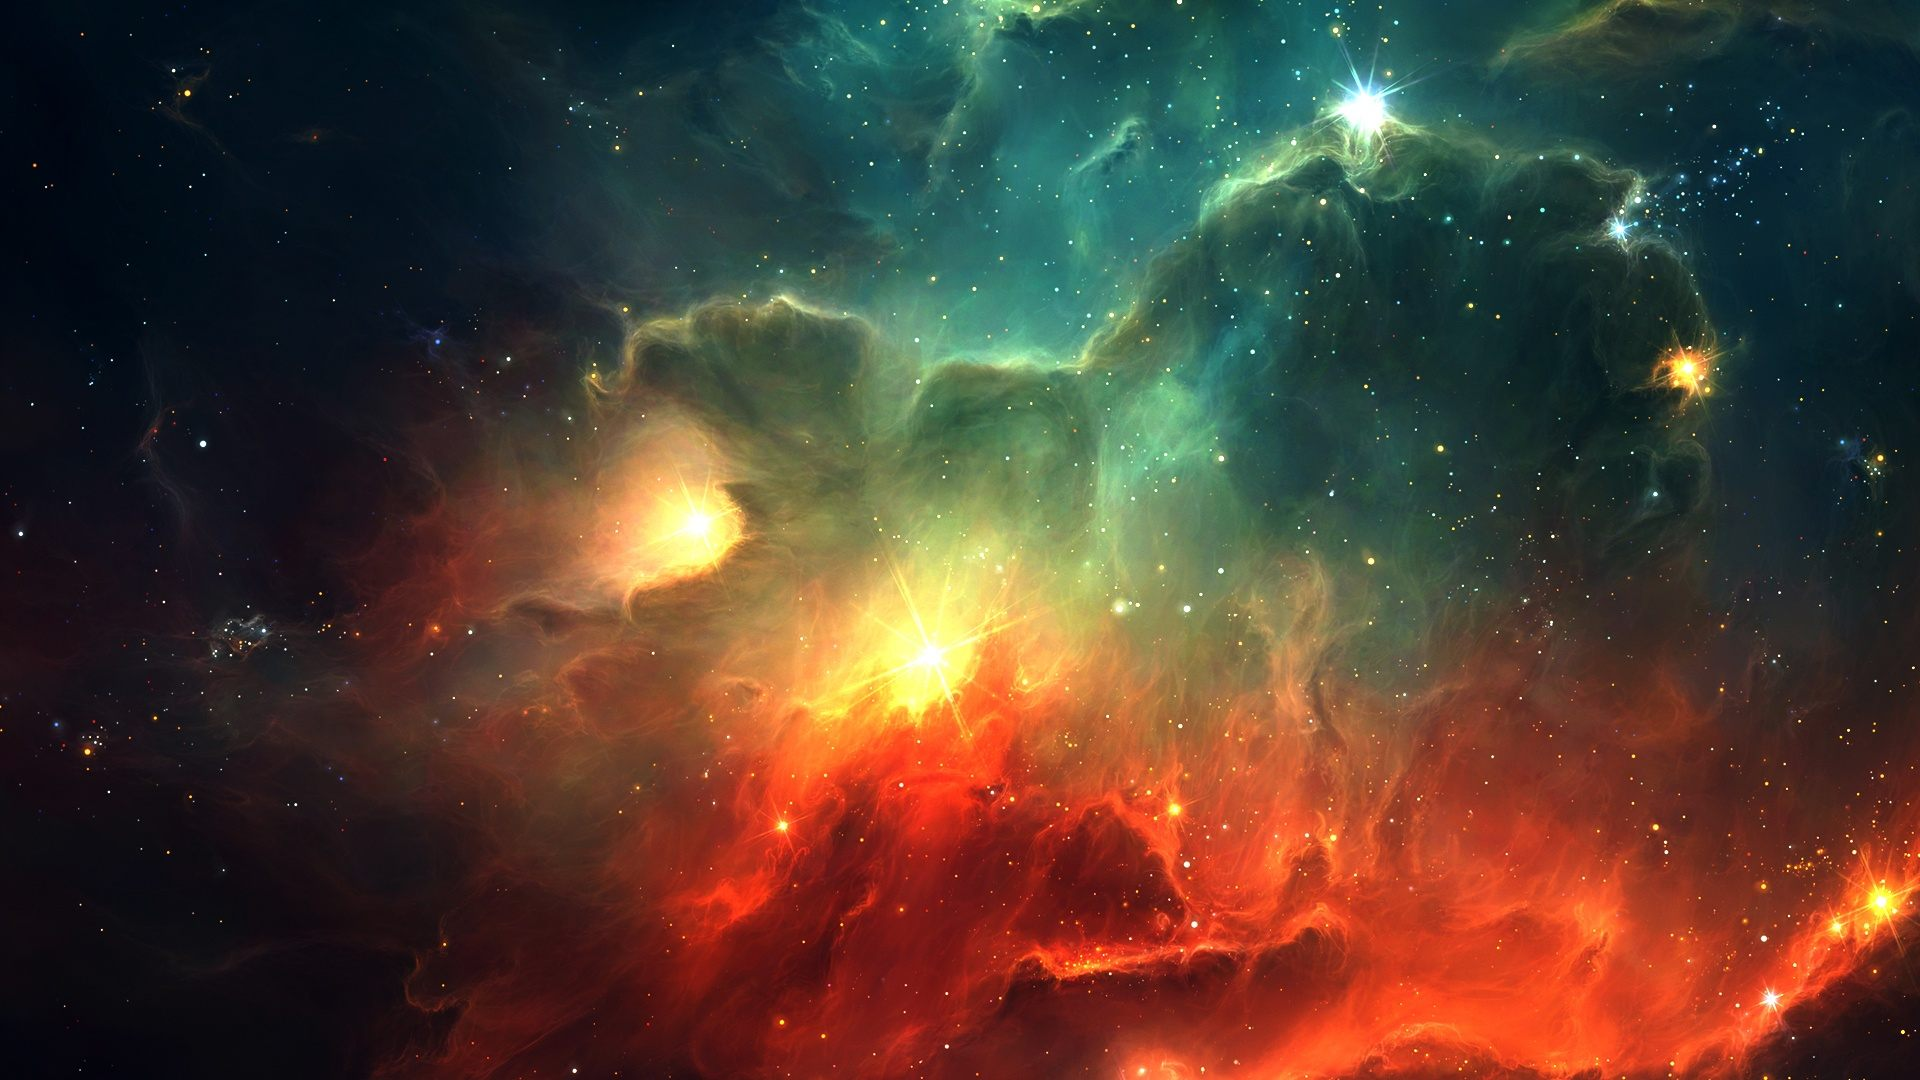 Universe Wallpapers 1080p 75 Images: Universe Wallpaper HD